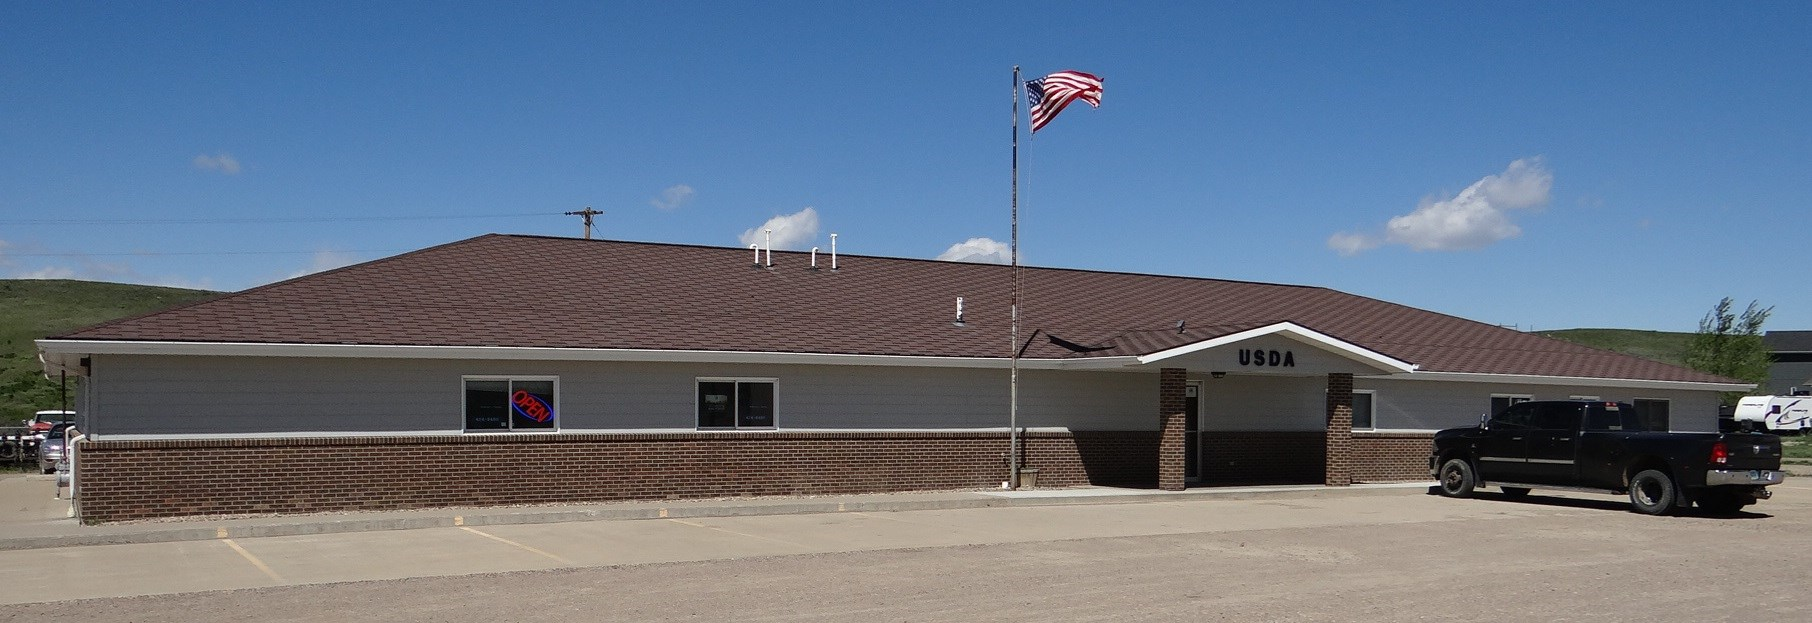 Commercial Income Property in Toole County Montana